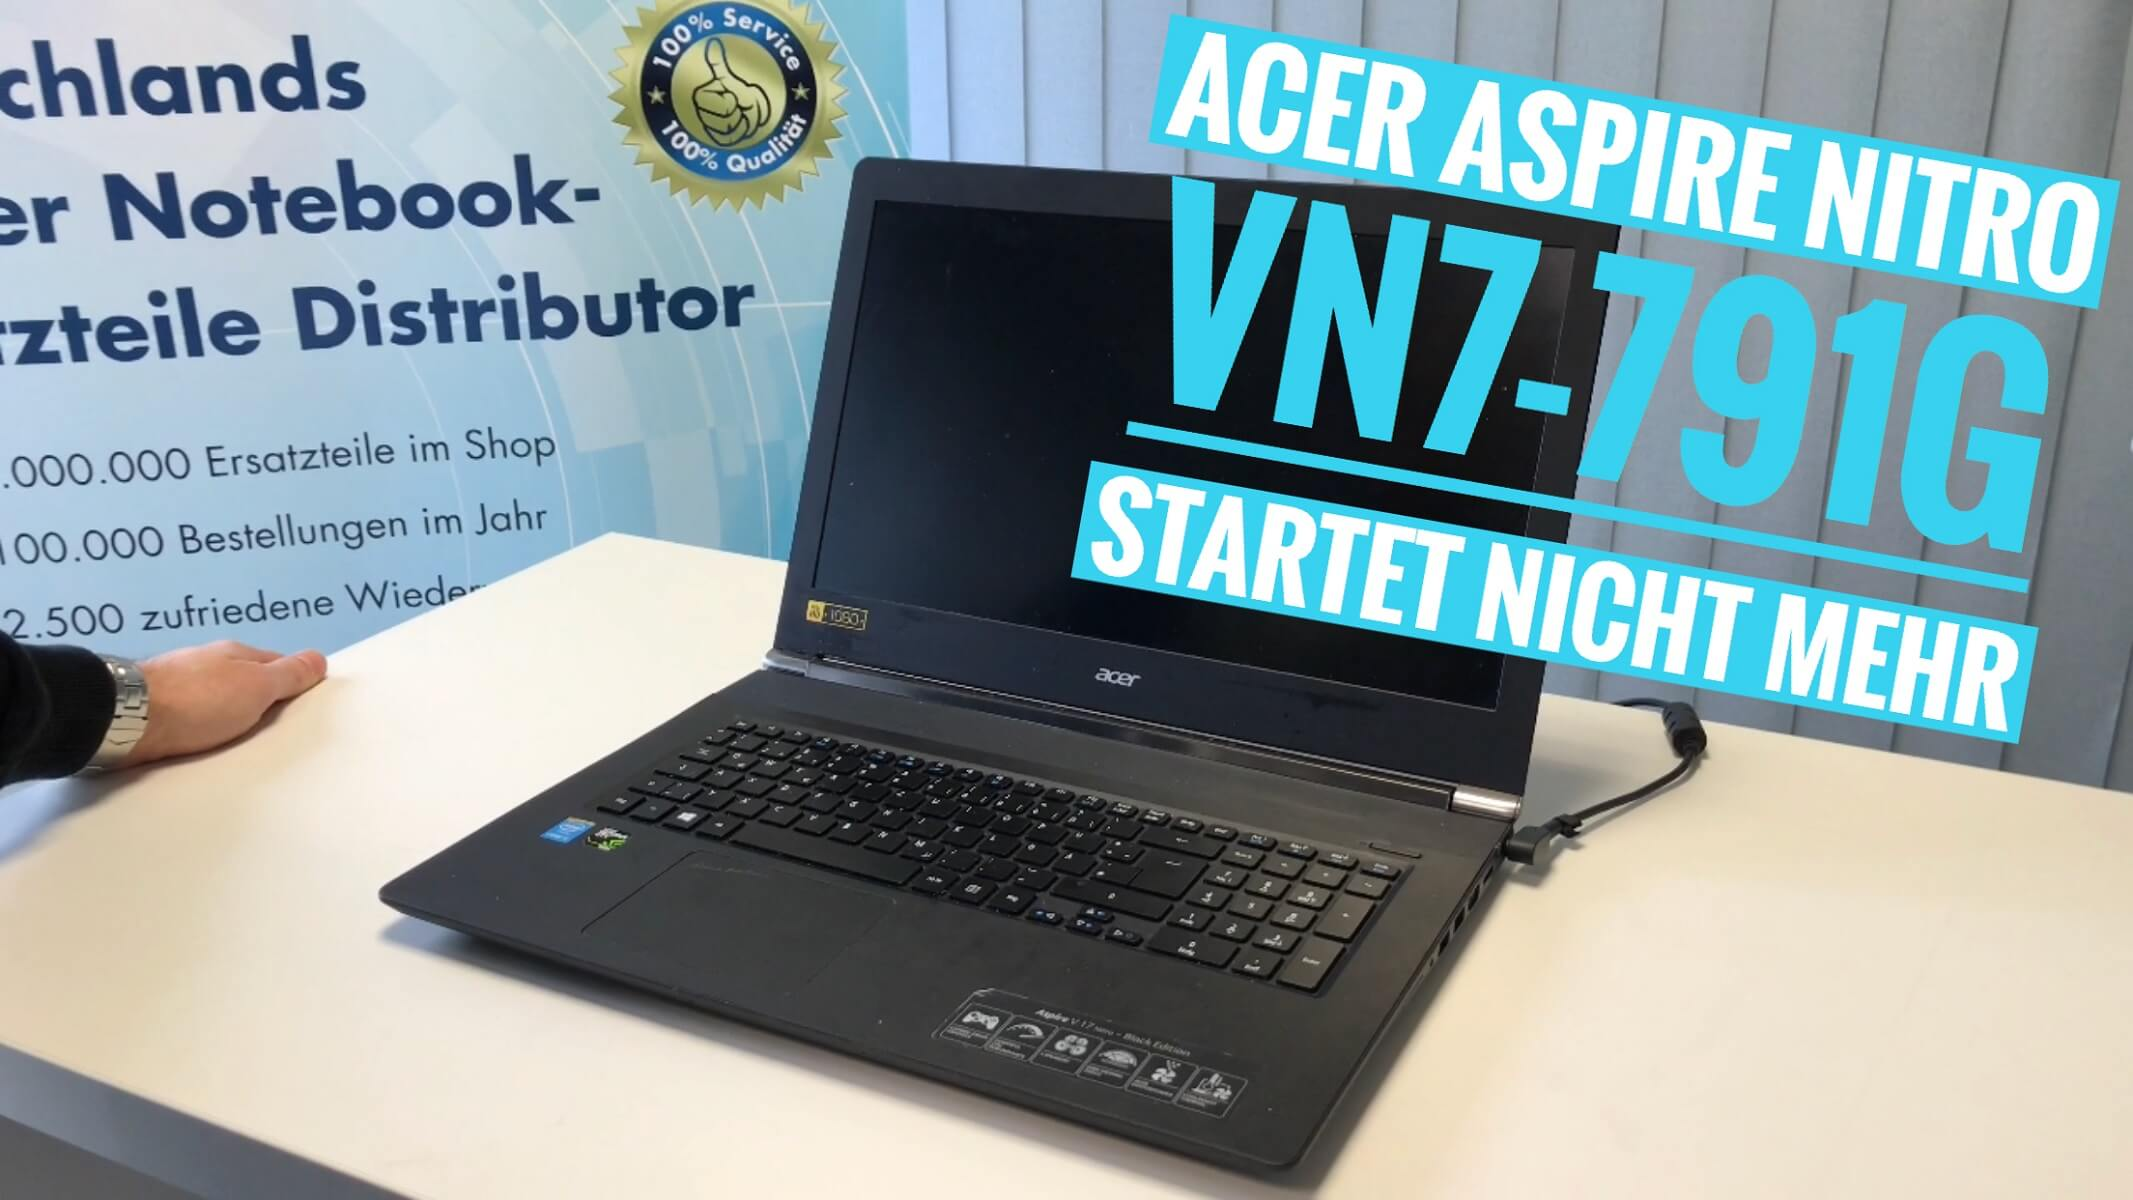 acer aspire nitro vn7 791g startet nicht mehr notebook. Black Bedroom Furniture Sets. Home Design Ideas